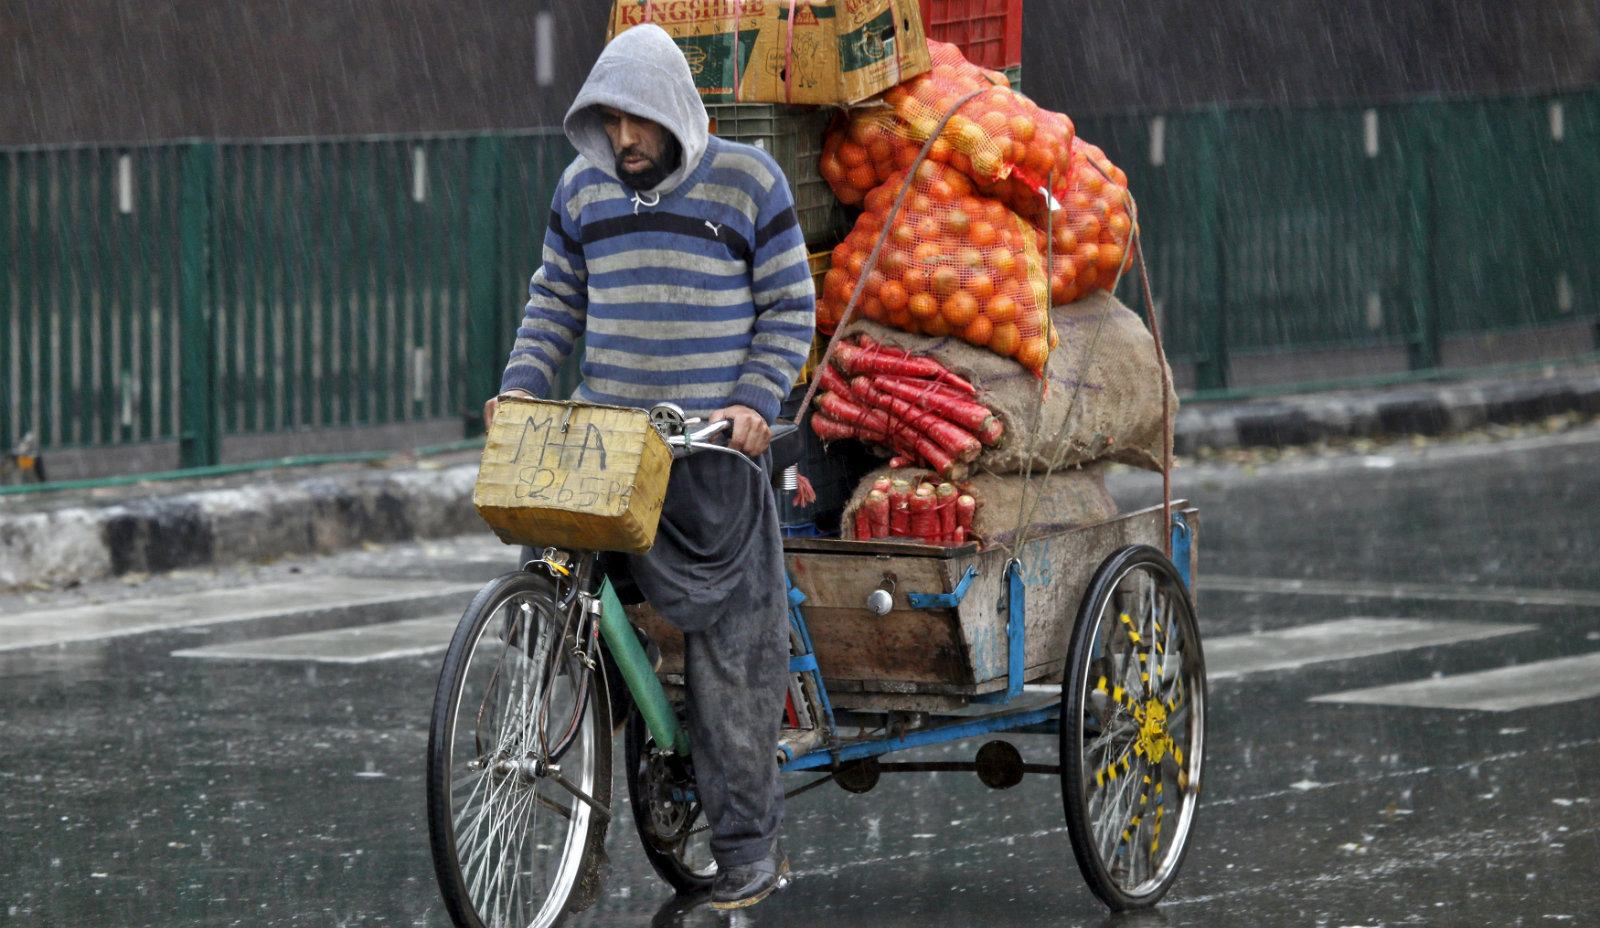 A man transports fruits and vegetables on a cycle rickshaw during a rain shower in Chandigarh, India, January 13, 2016. India's annual consumer price inflation edged up for a fifth consecutive month to 5.61 percent in December from a year earlier, matching analyst expectations on the back of rising food prices, government data showed on Tuesday.